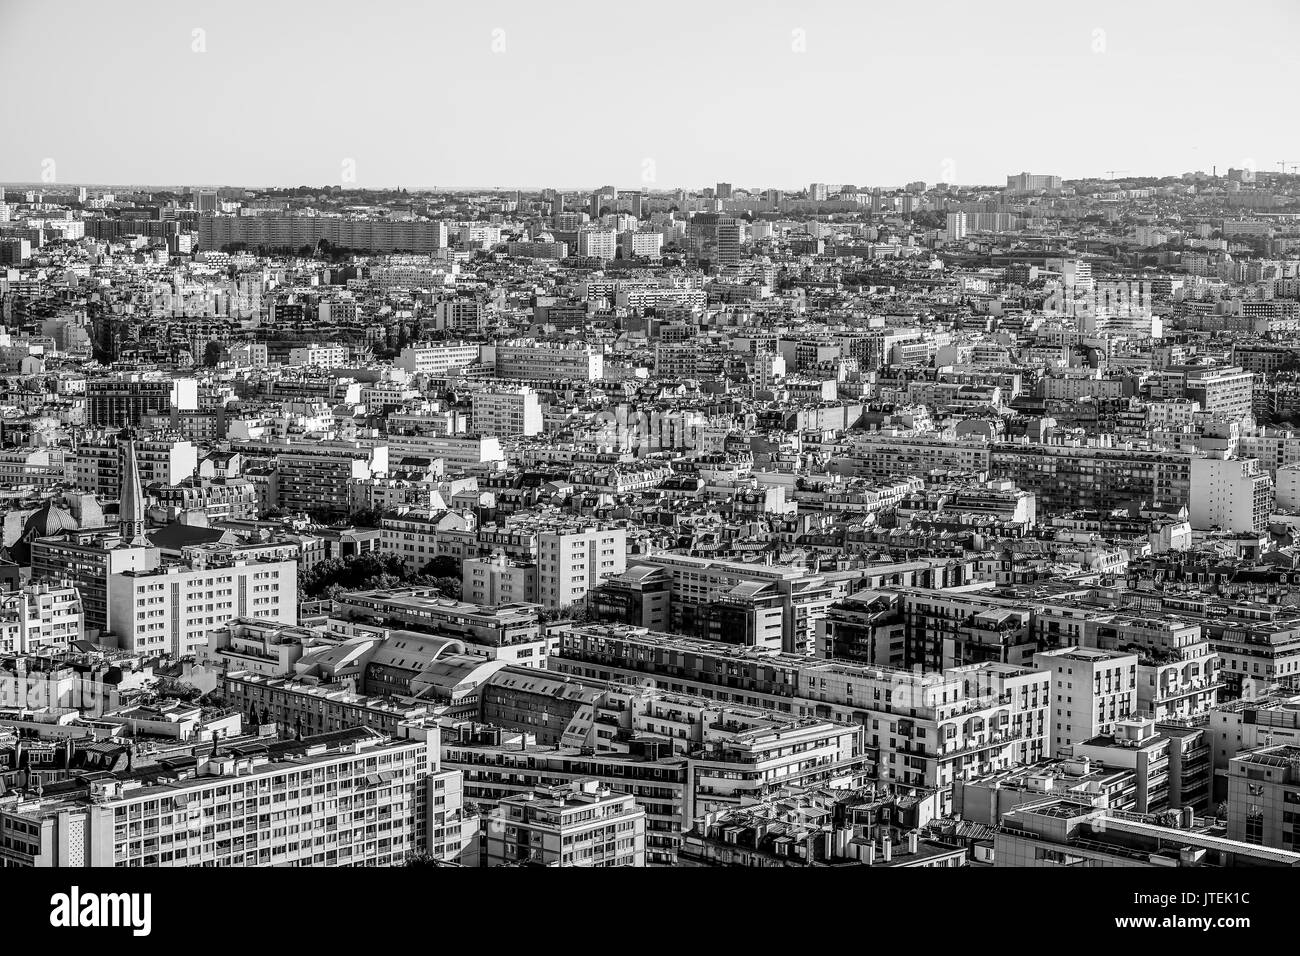 Wide angle view over the city of Paris on a hot summer day - aerial shot - Stock Image